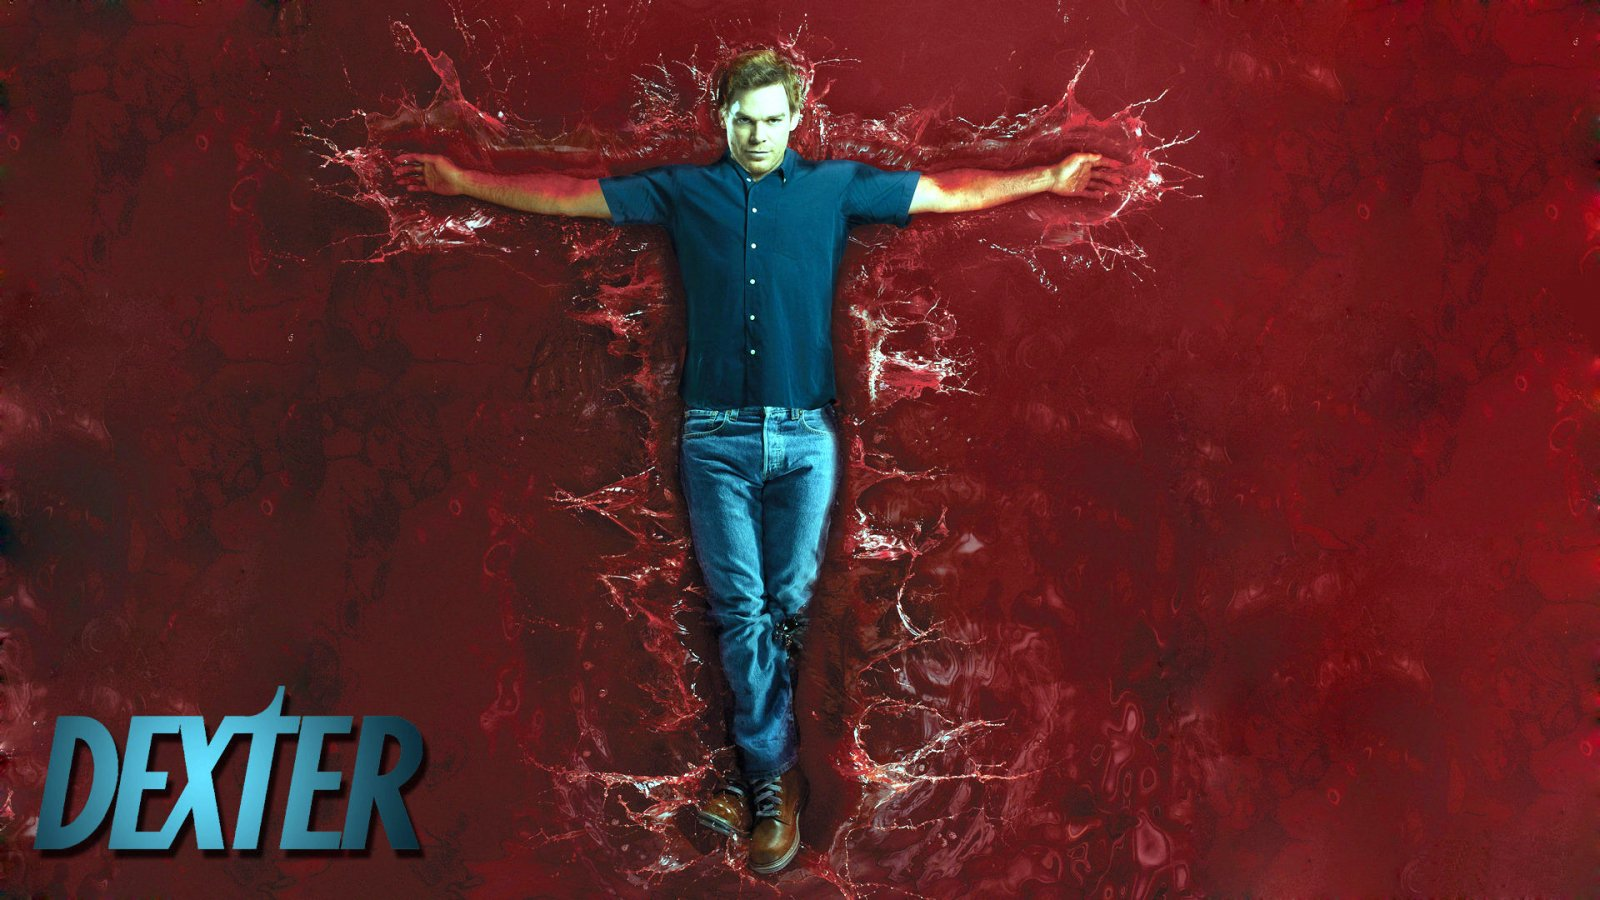 Dexter Wallpaper 1080p Wallpapersafari